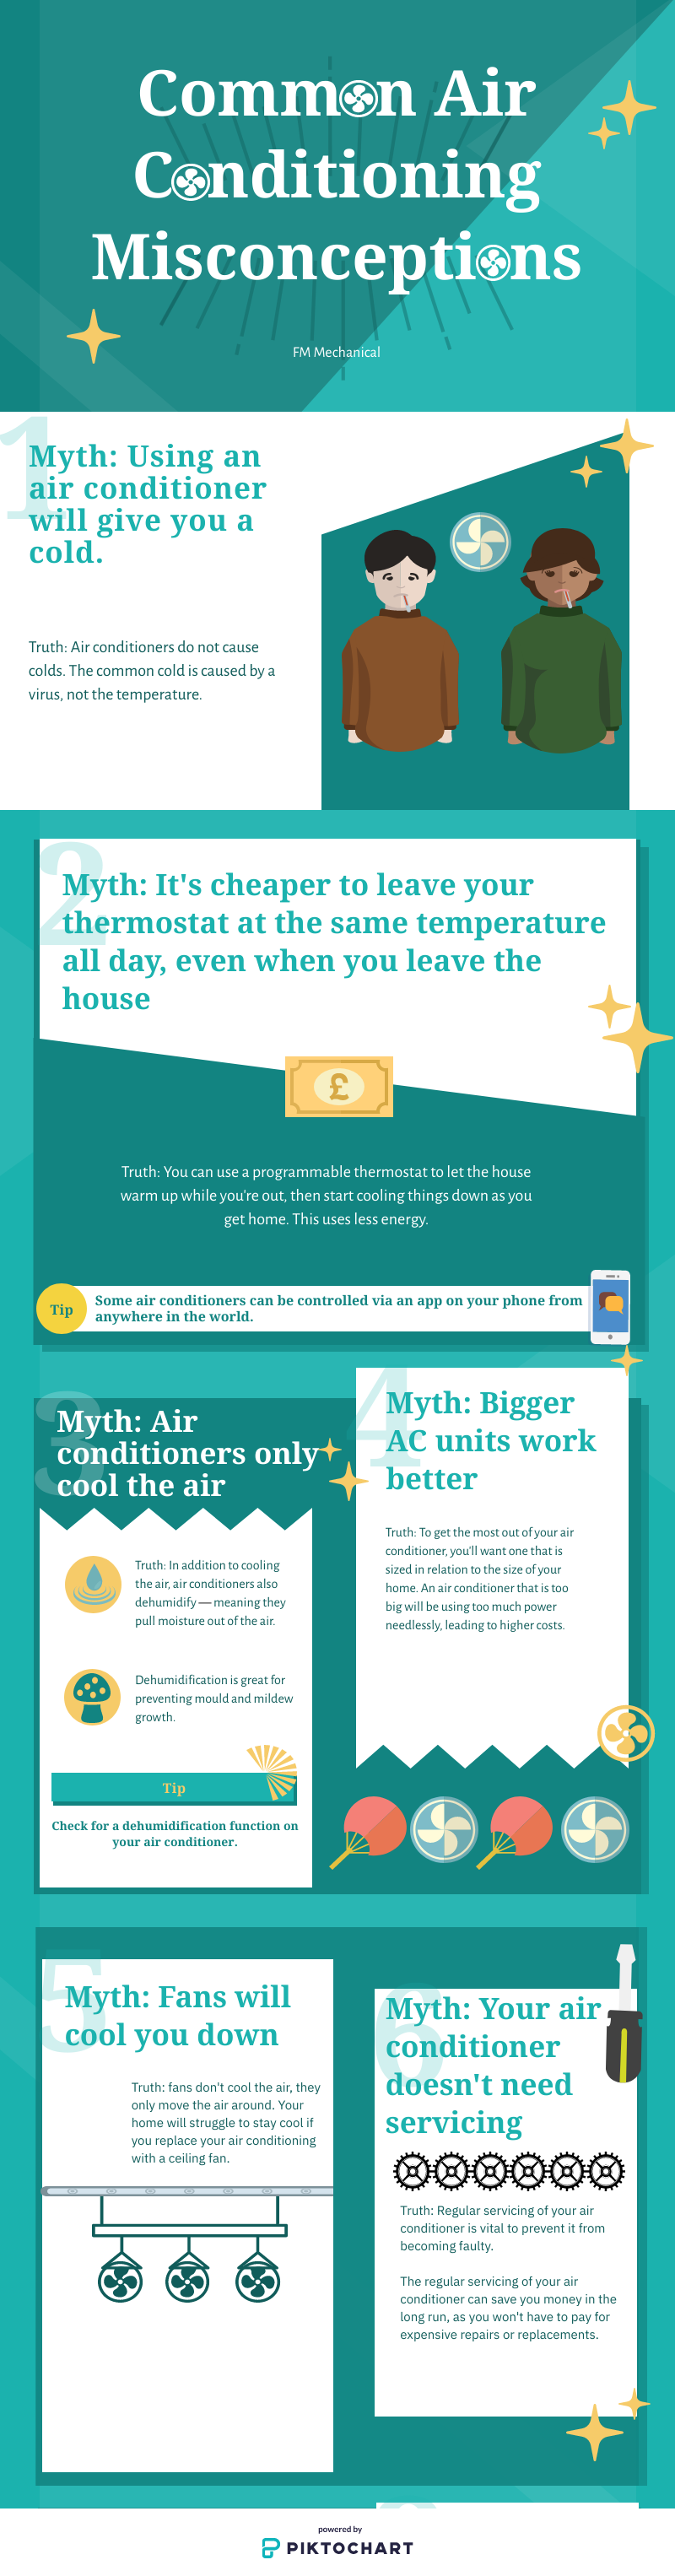 Common air conditioning misconceptions [infographic]